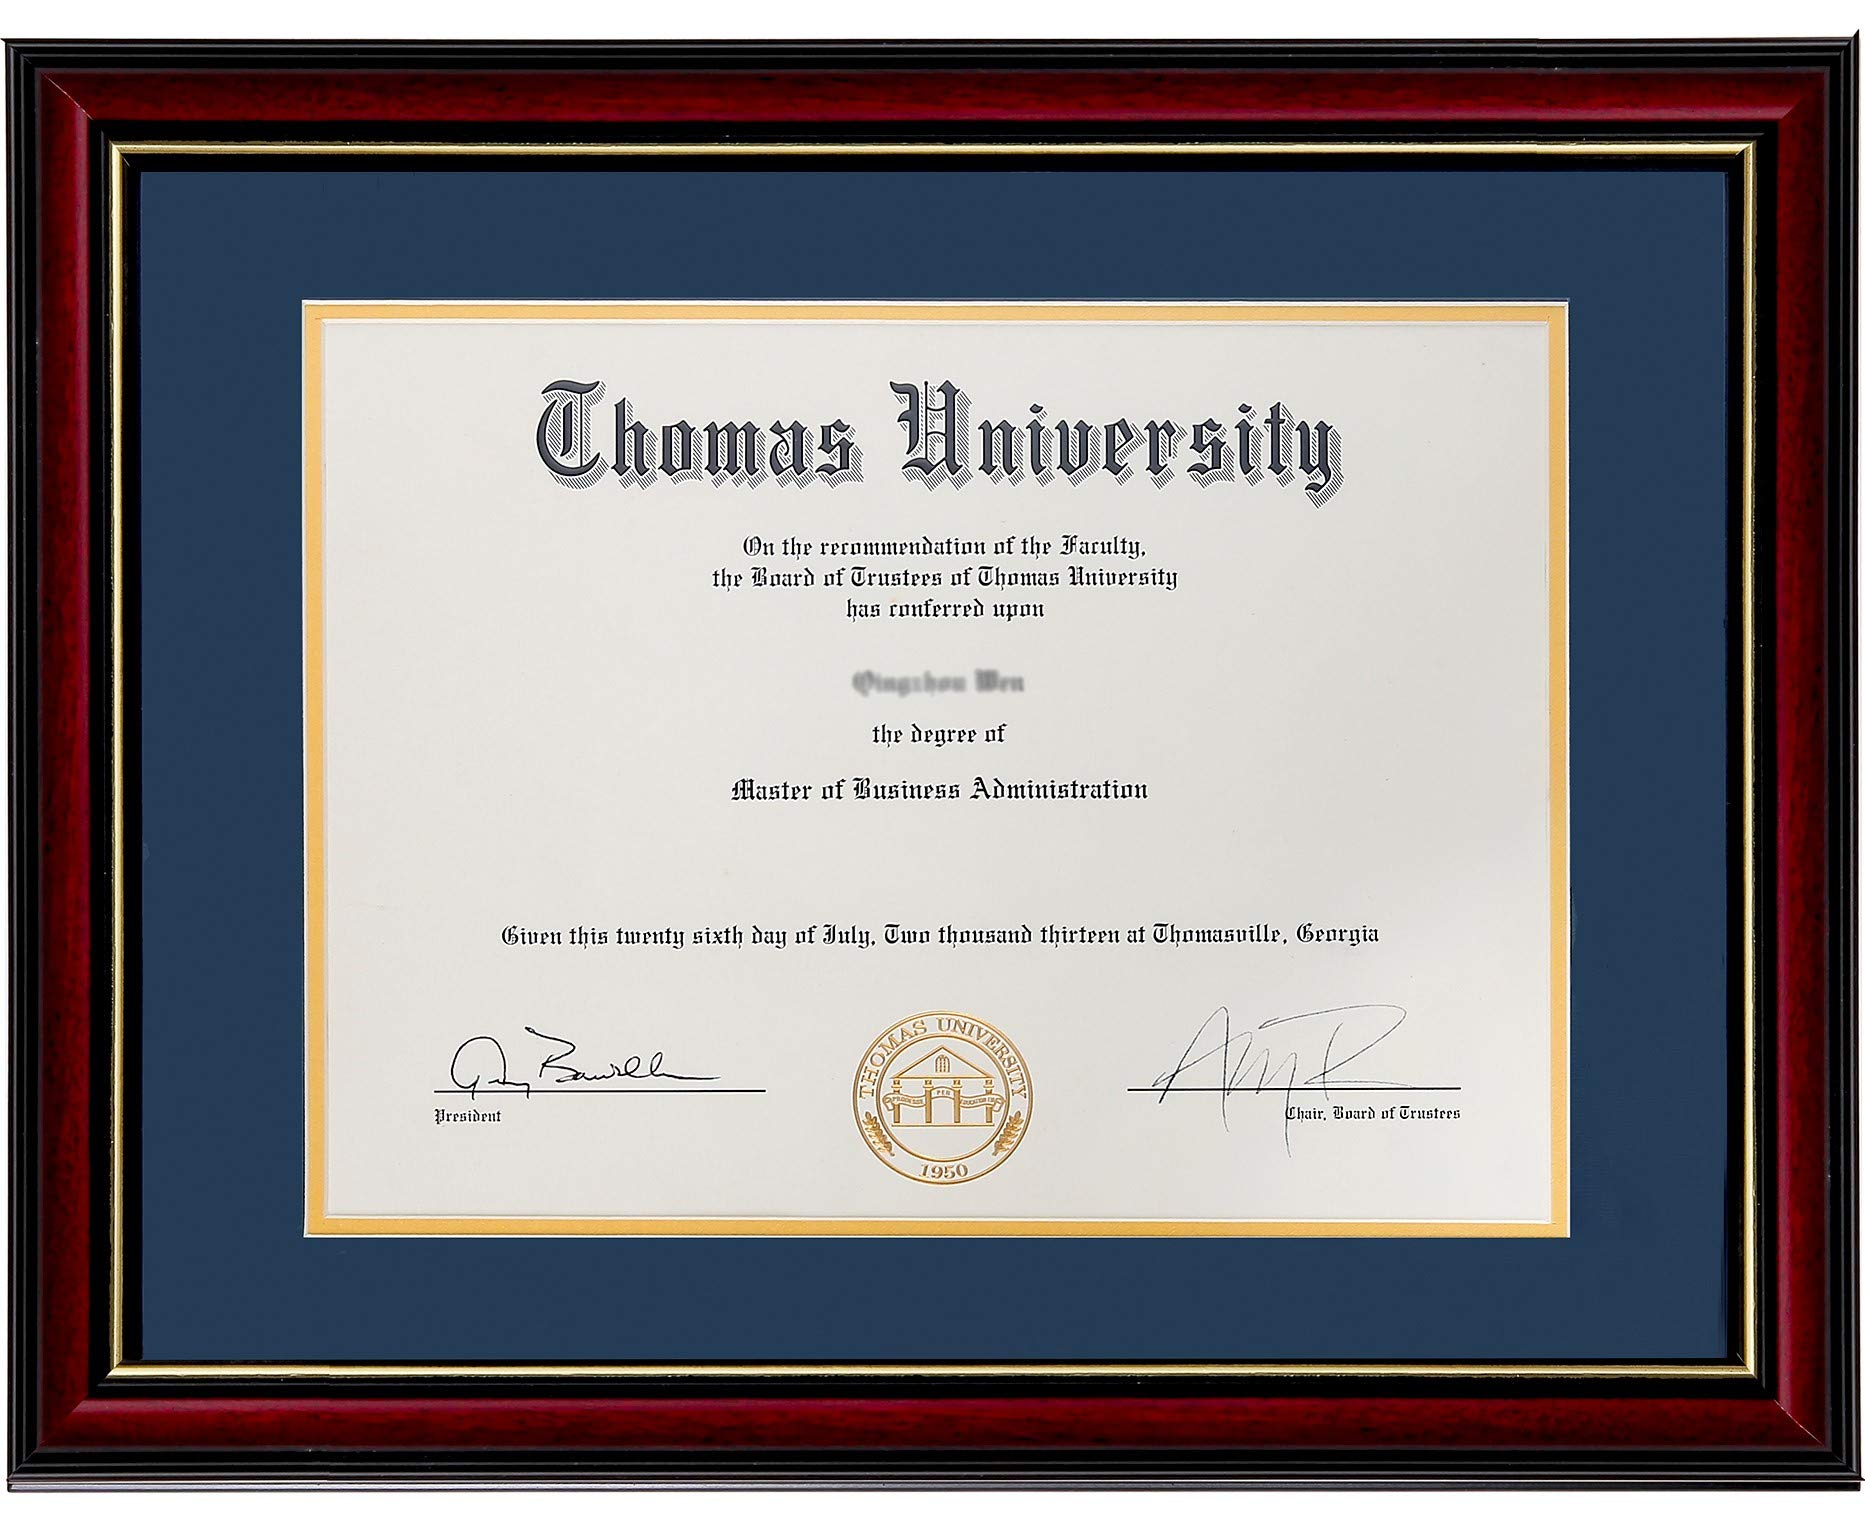 Flagship Diploma Frame Real Wood & Glass Golden Rim Sized 8.5x11 Inch with Mat and 11x14 Inch Without Mat for Documents Certificates (Double Mat, Navy Blue Mat with Golden Rim) by Flagship Frames